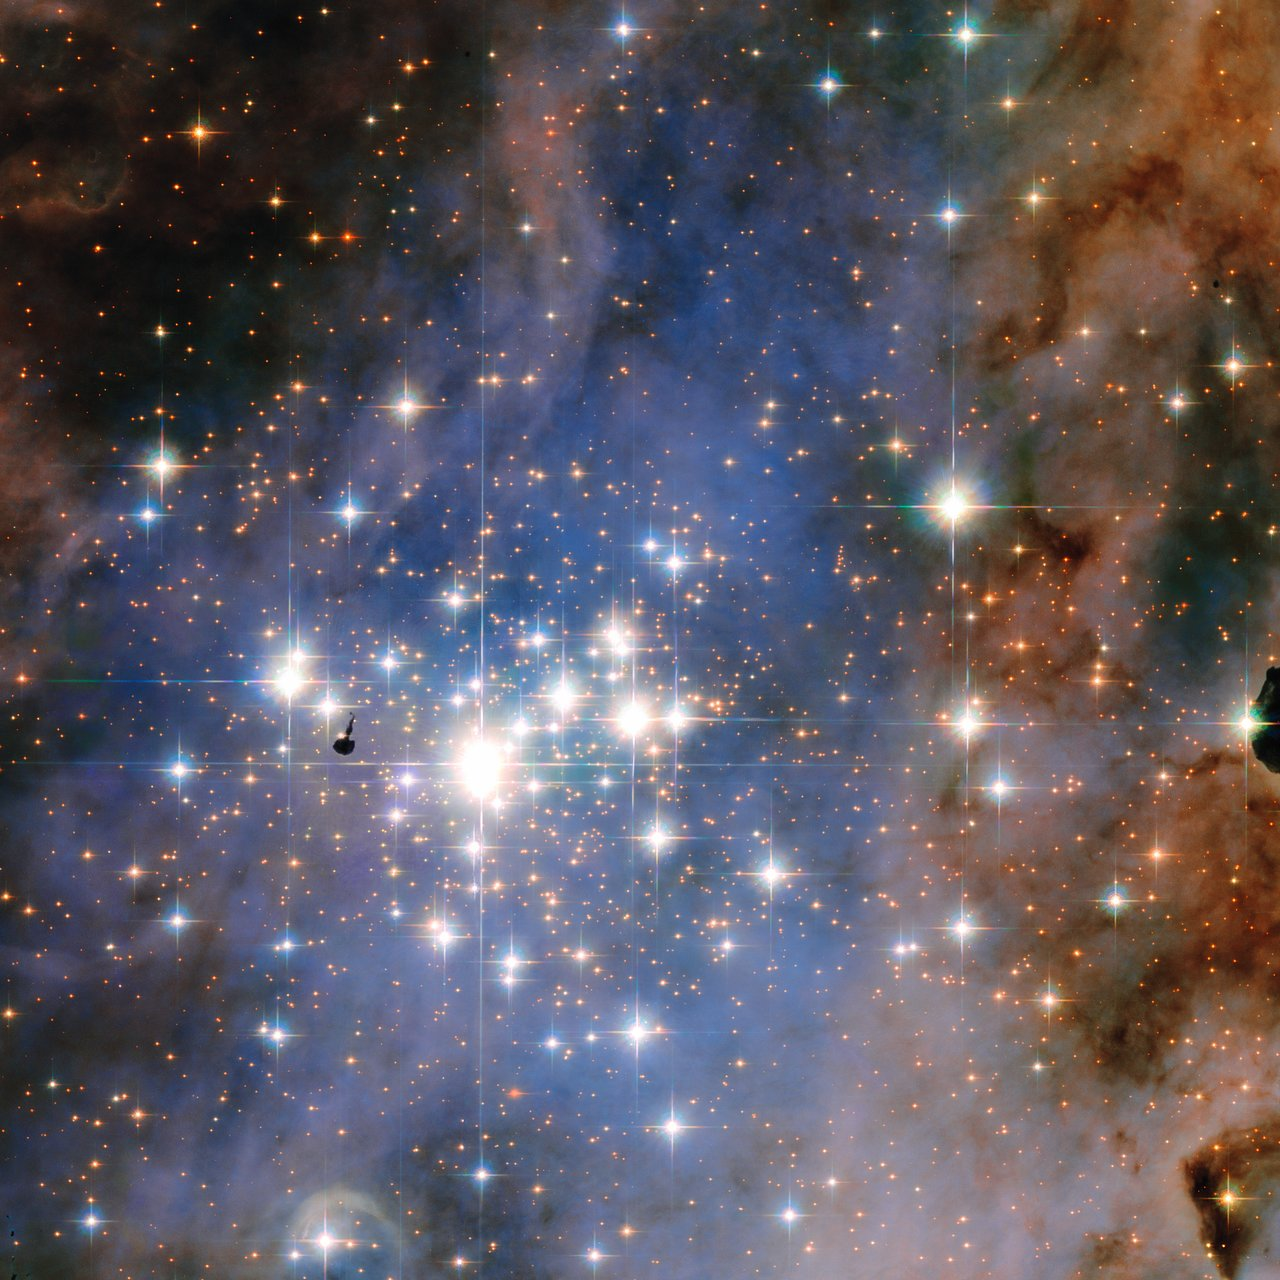 Single stars are often overlooked in favour of their larger cosmic cousins — but when they join forces, they create truly breathtaking scenes to rival even the most glowing of nebulae or swirling of galaxies. This NASA/ESA Hubble Space Telescope image features the star cluster Trumpler 14. One of the largest gatherings of hot, massive and bright stars in the Milky Way, this cluster houses some of the most luminous stars in our entire galaxy.